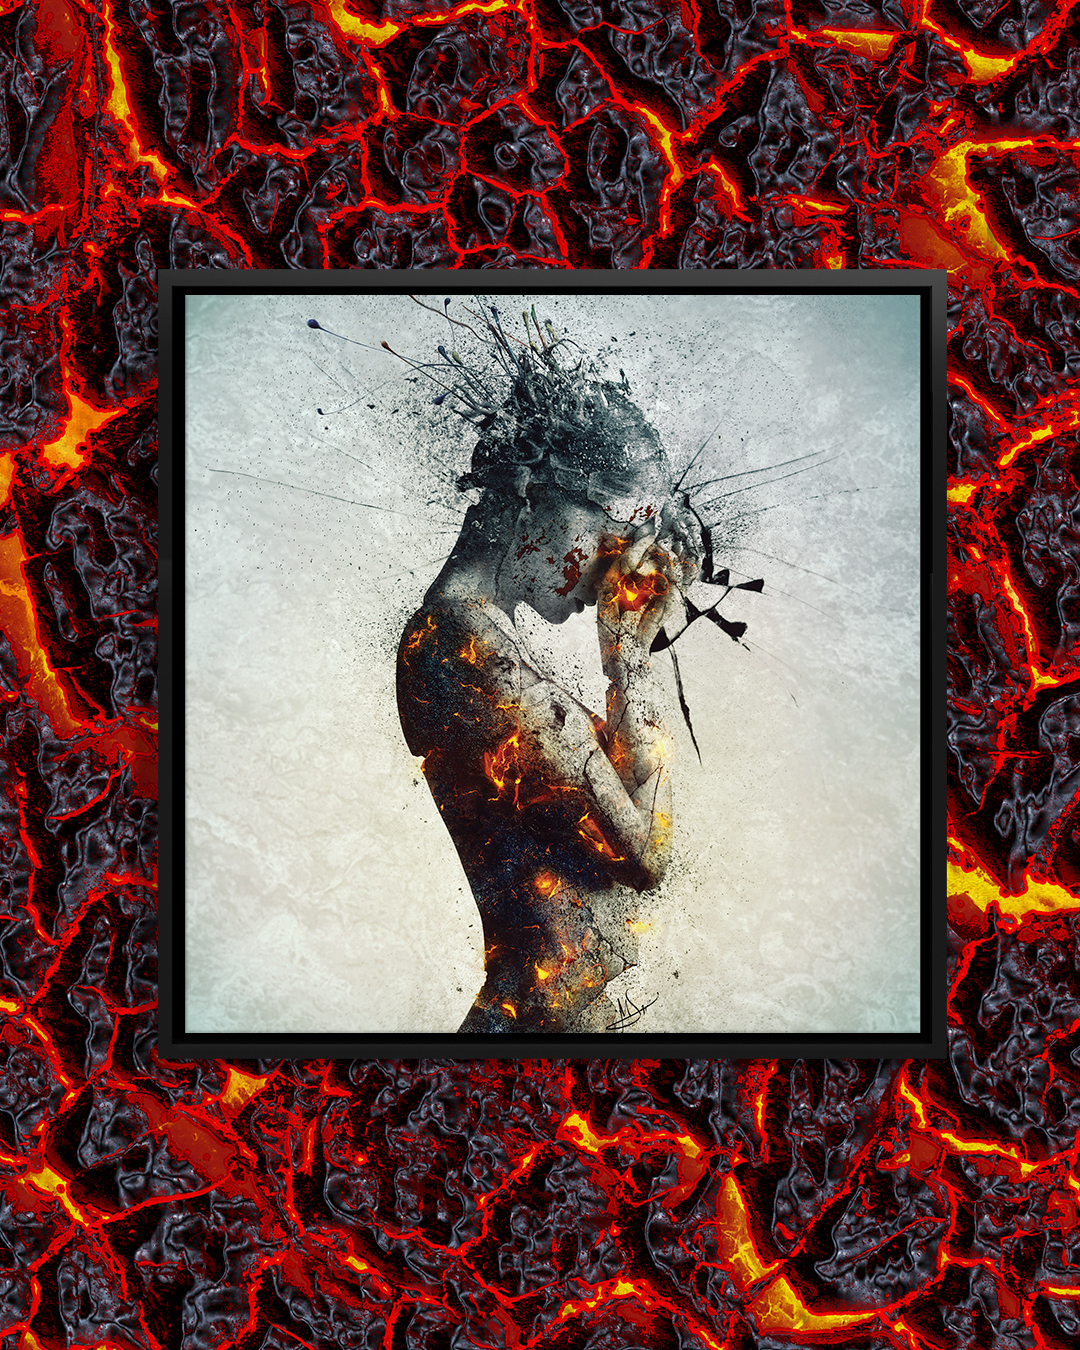 """""""Deliberation"""" by Mario Sanchez Nevado shows a woman covering her face while wisps of gray burst from her head and fire-like orange tones shine through her body."""